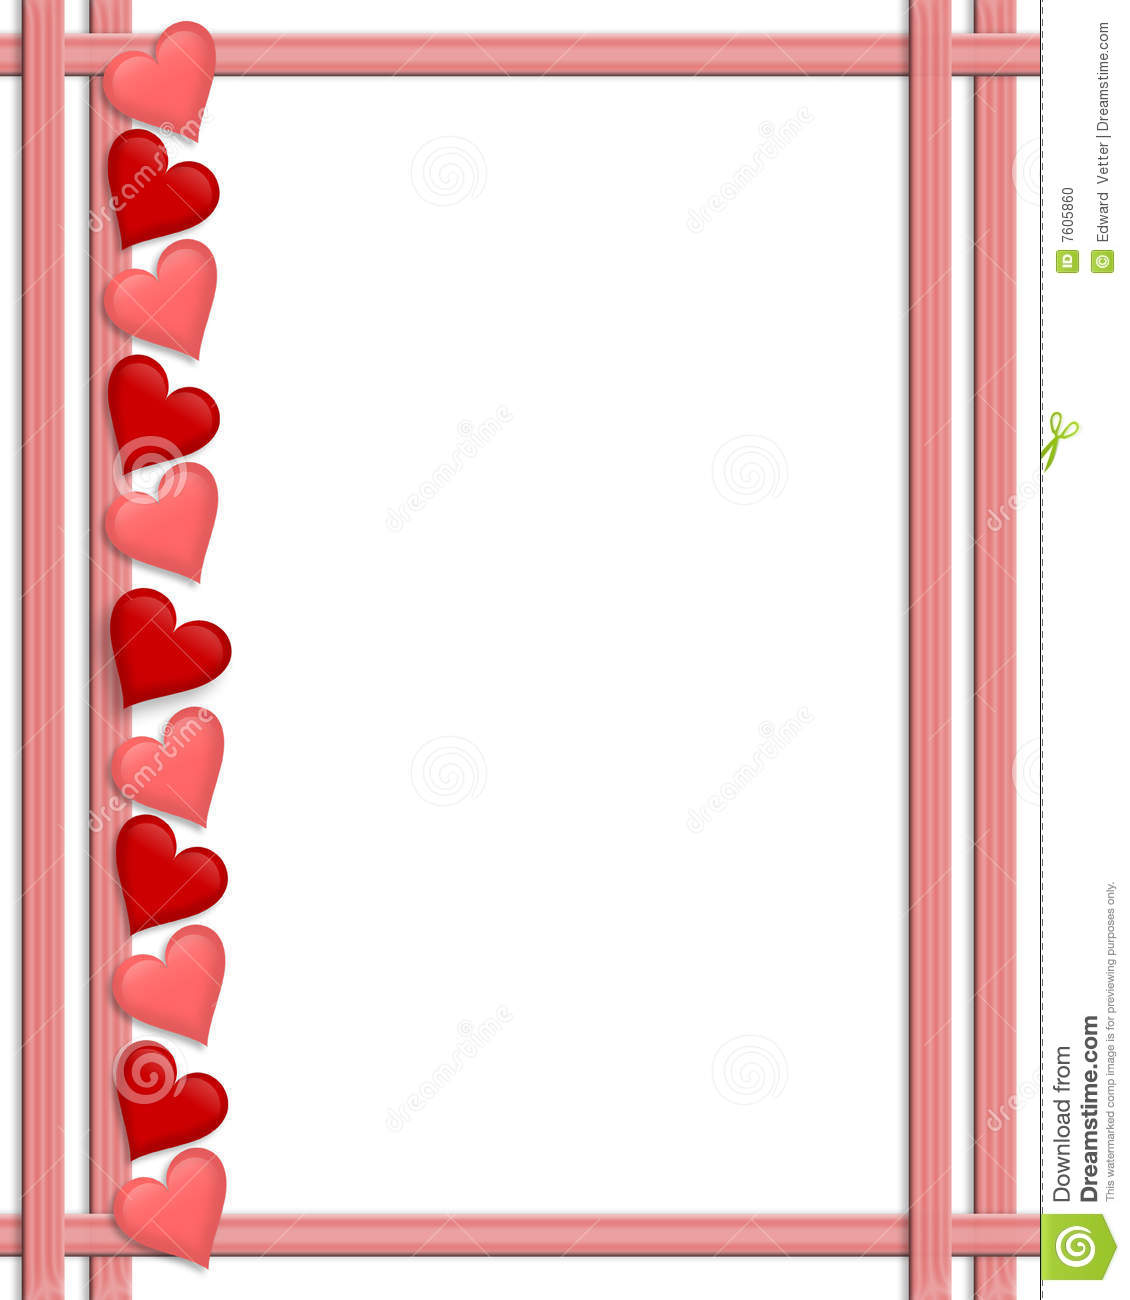 valentines day border hearts stock illustration